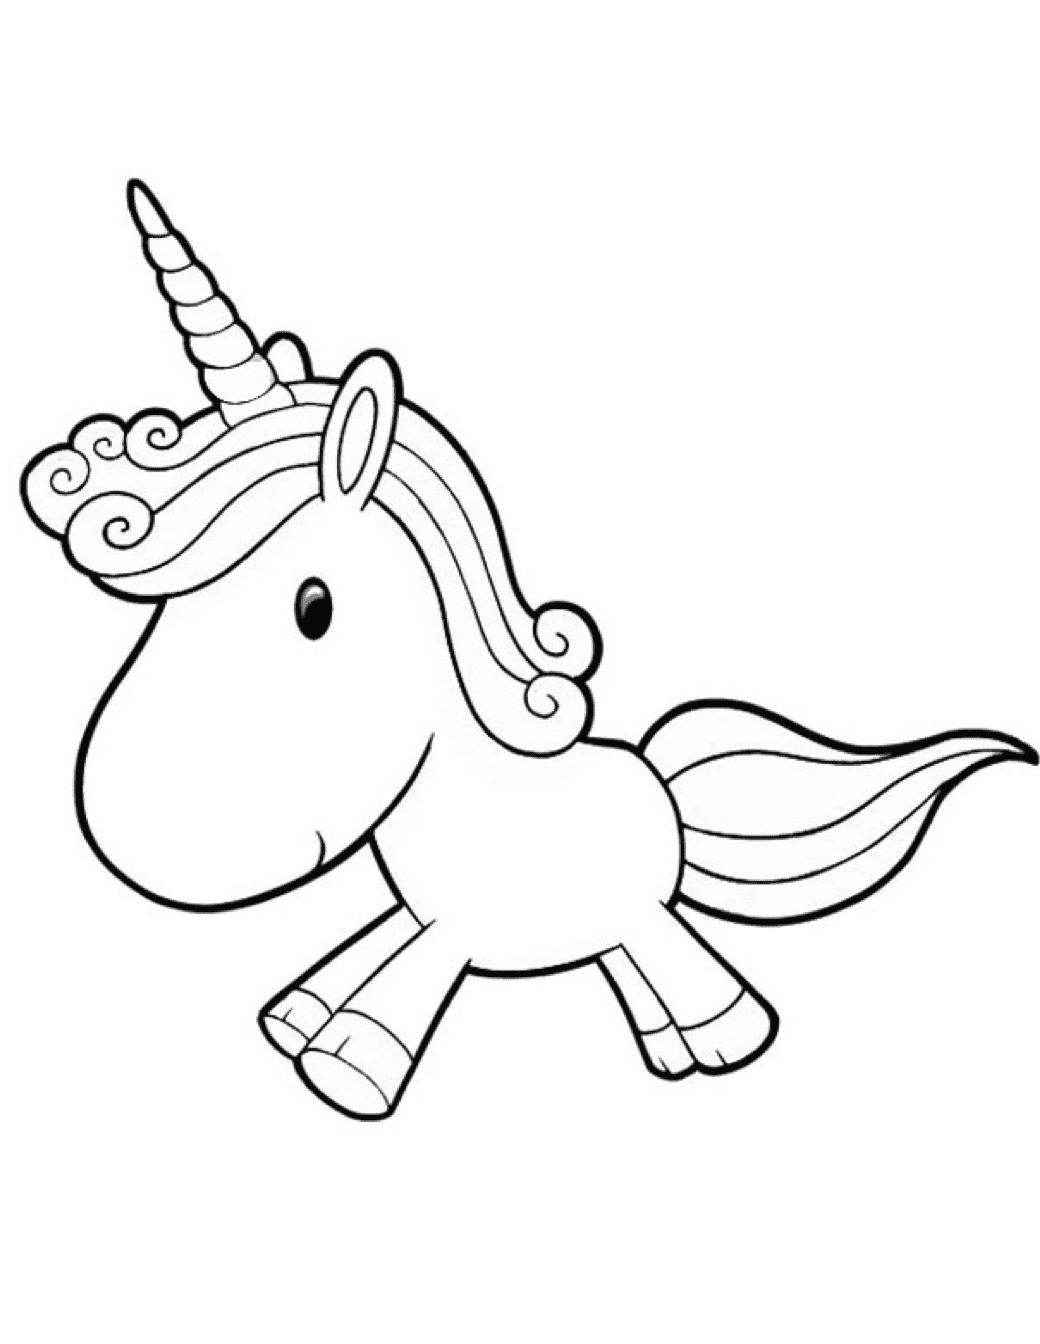 Genial Cartoon Unicorn Coloring Page